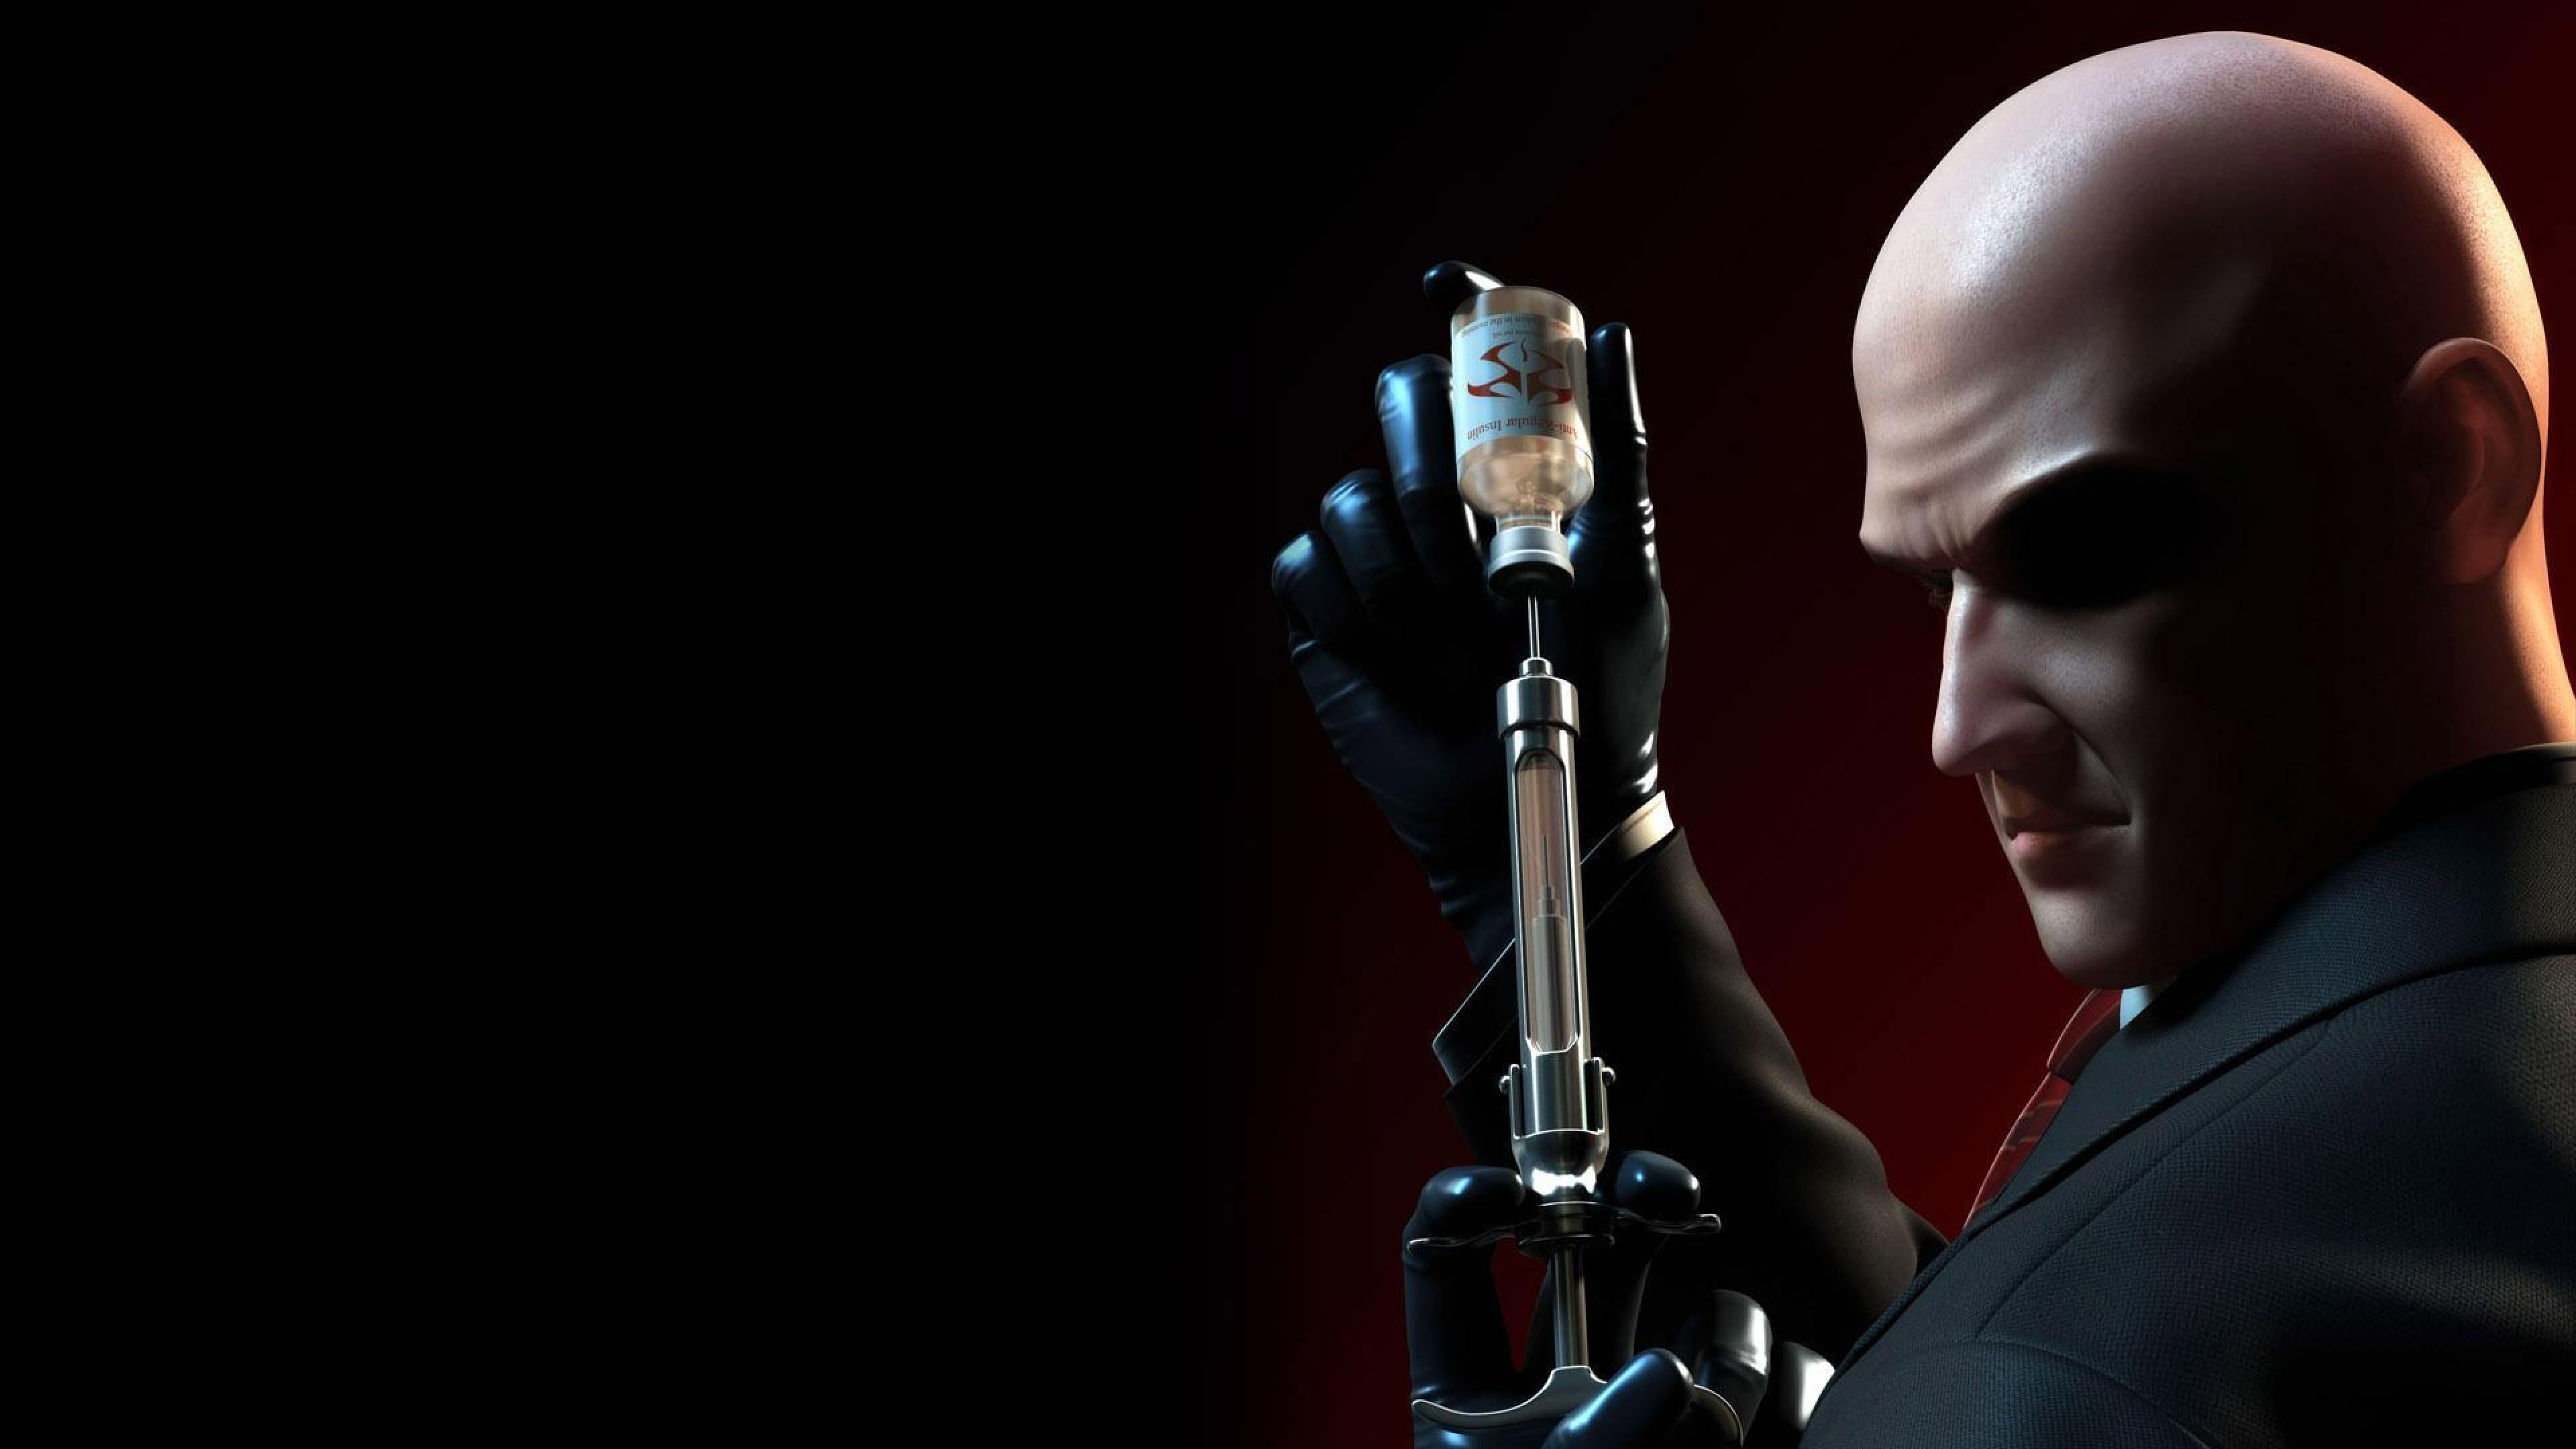 Hitman Agent 47 Wallpapers 3840x2160